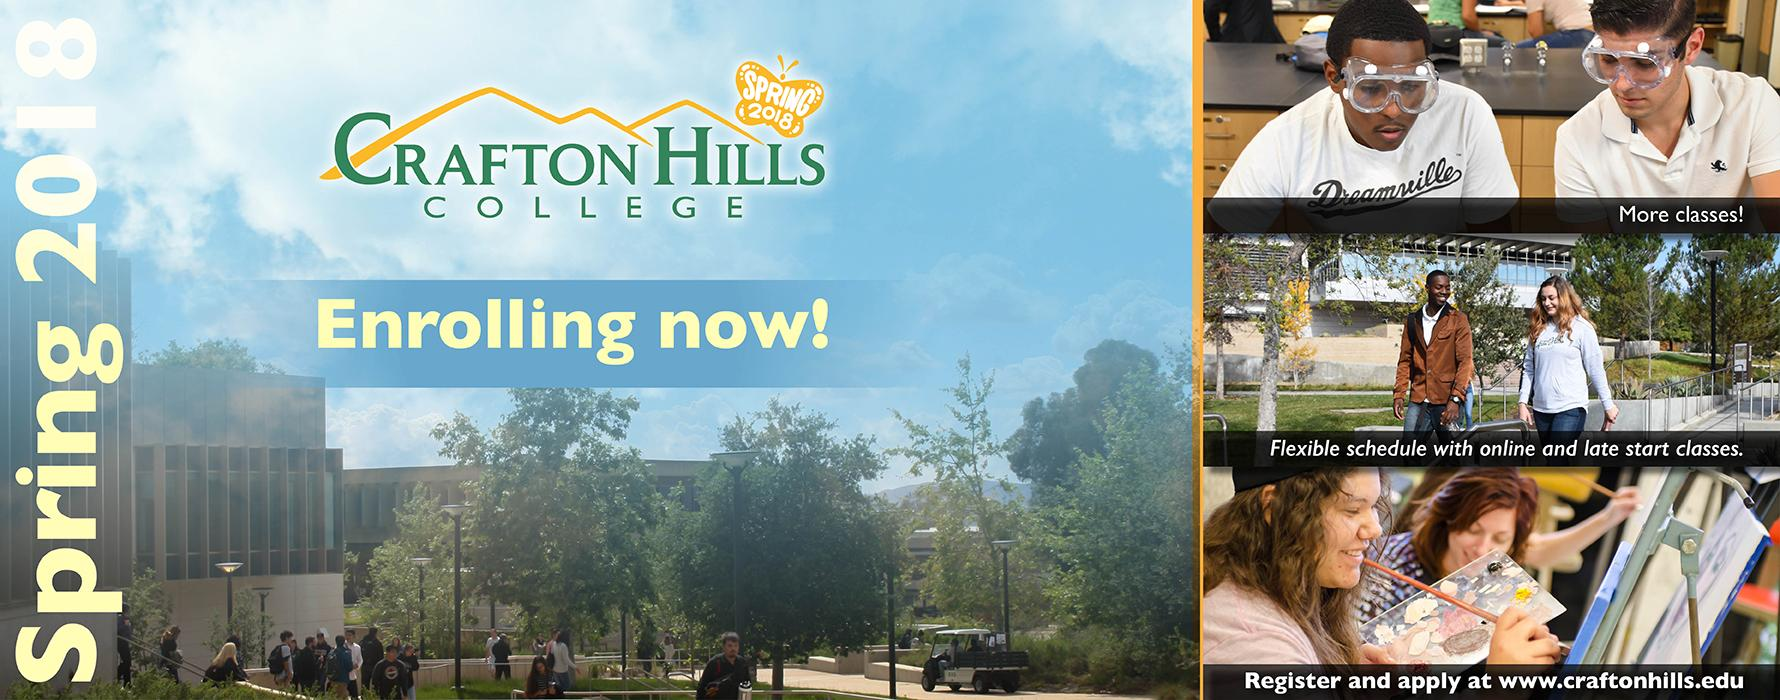 Crafton Hills College Spring 2018.Enrolling now!